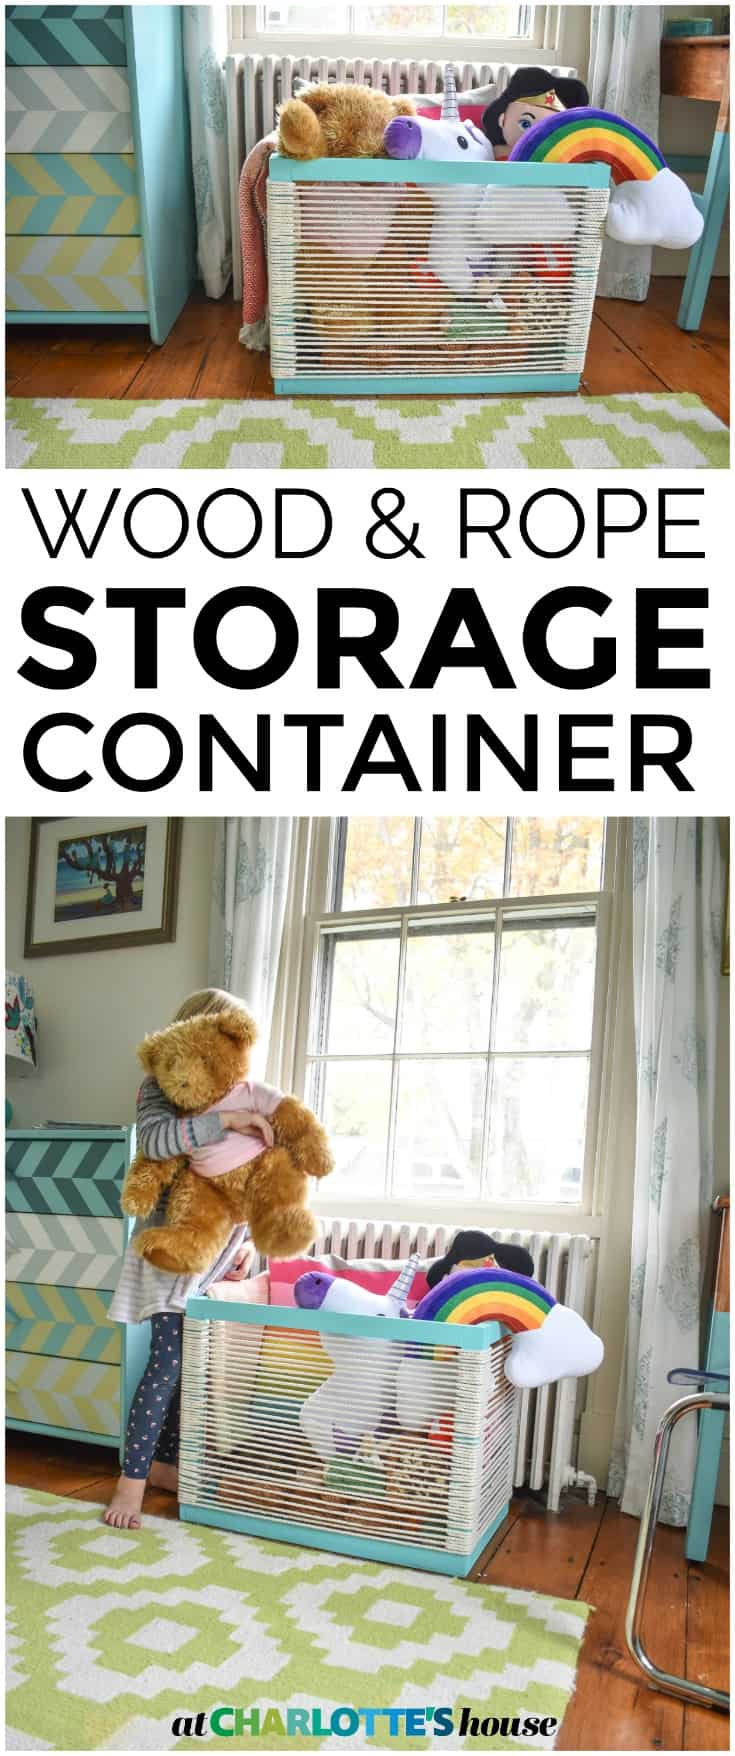 Simple wood and rope storage container. Durable and lightweight.